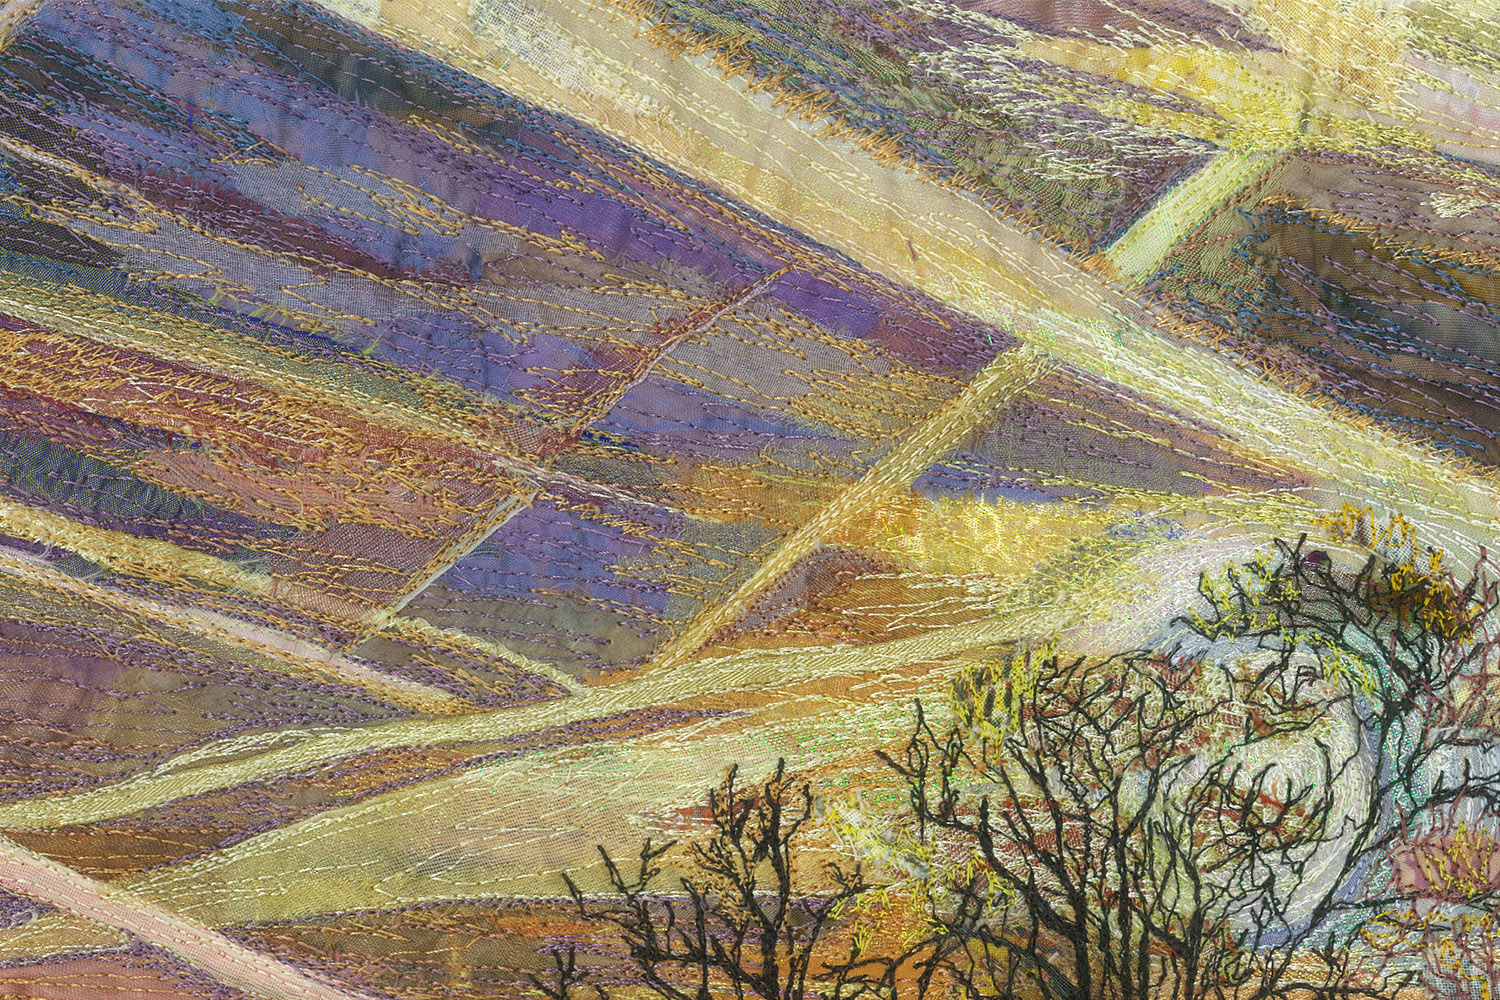 Sky Trails detail